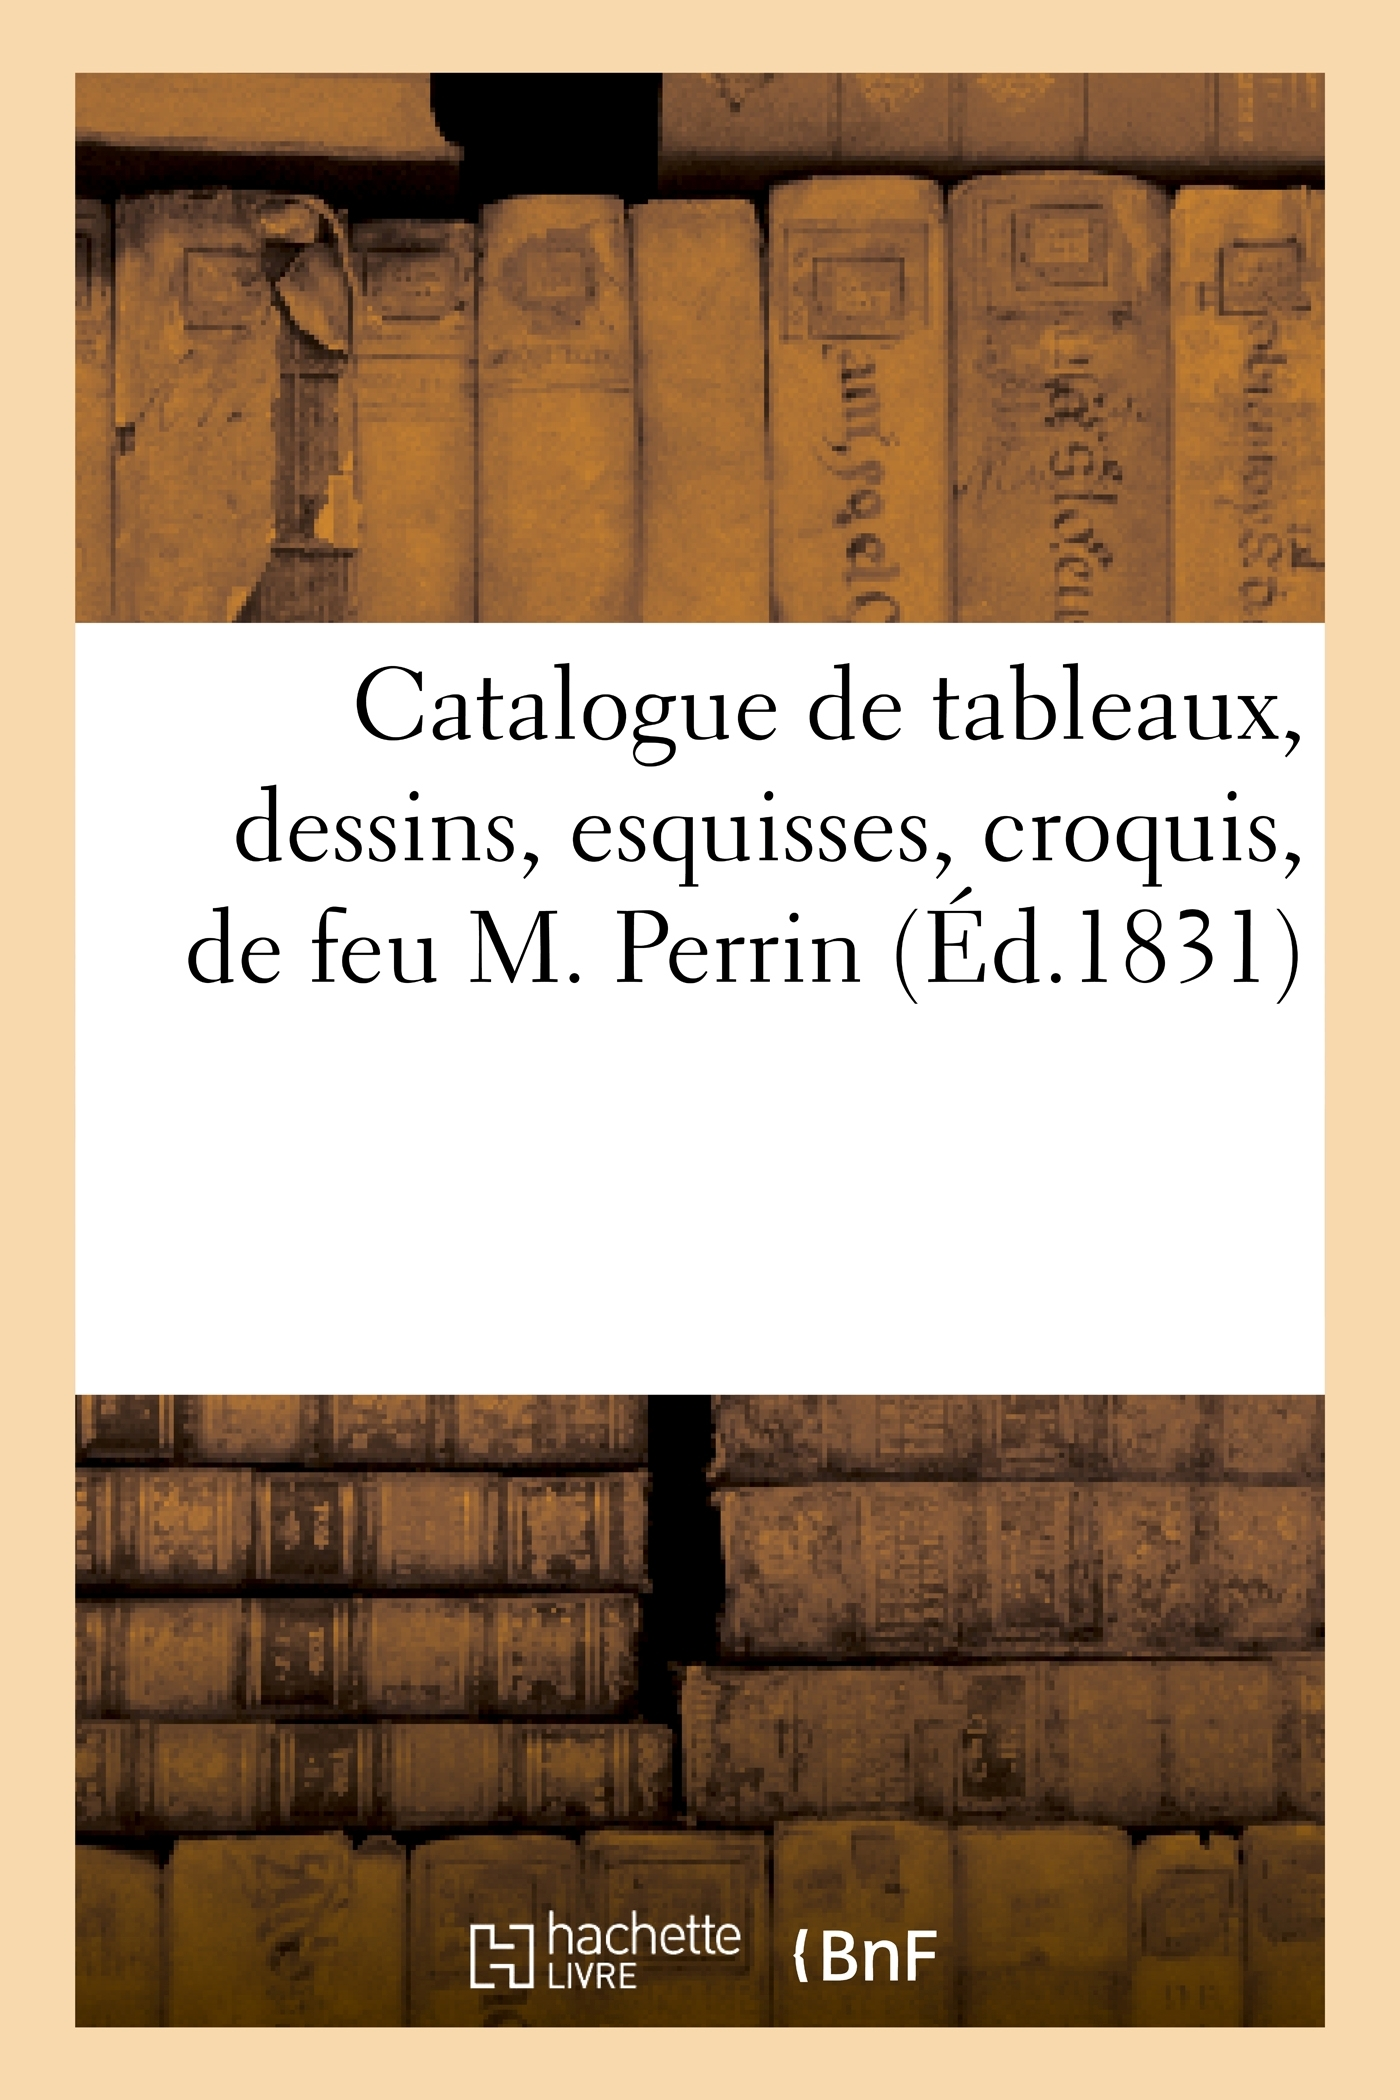 CATALOGUE DE TABLEAUX, DESSINS, ESQUISSES, CROQUIS, DE FEU M. PERRIN